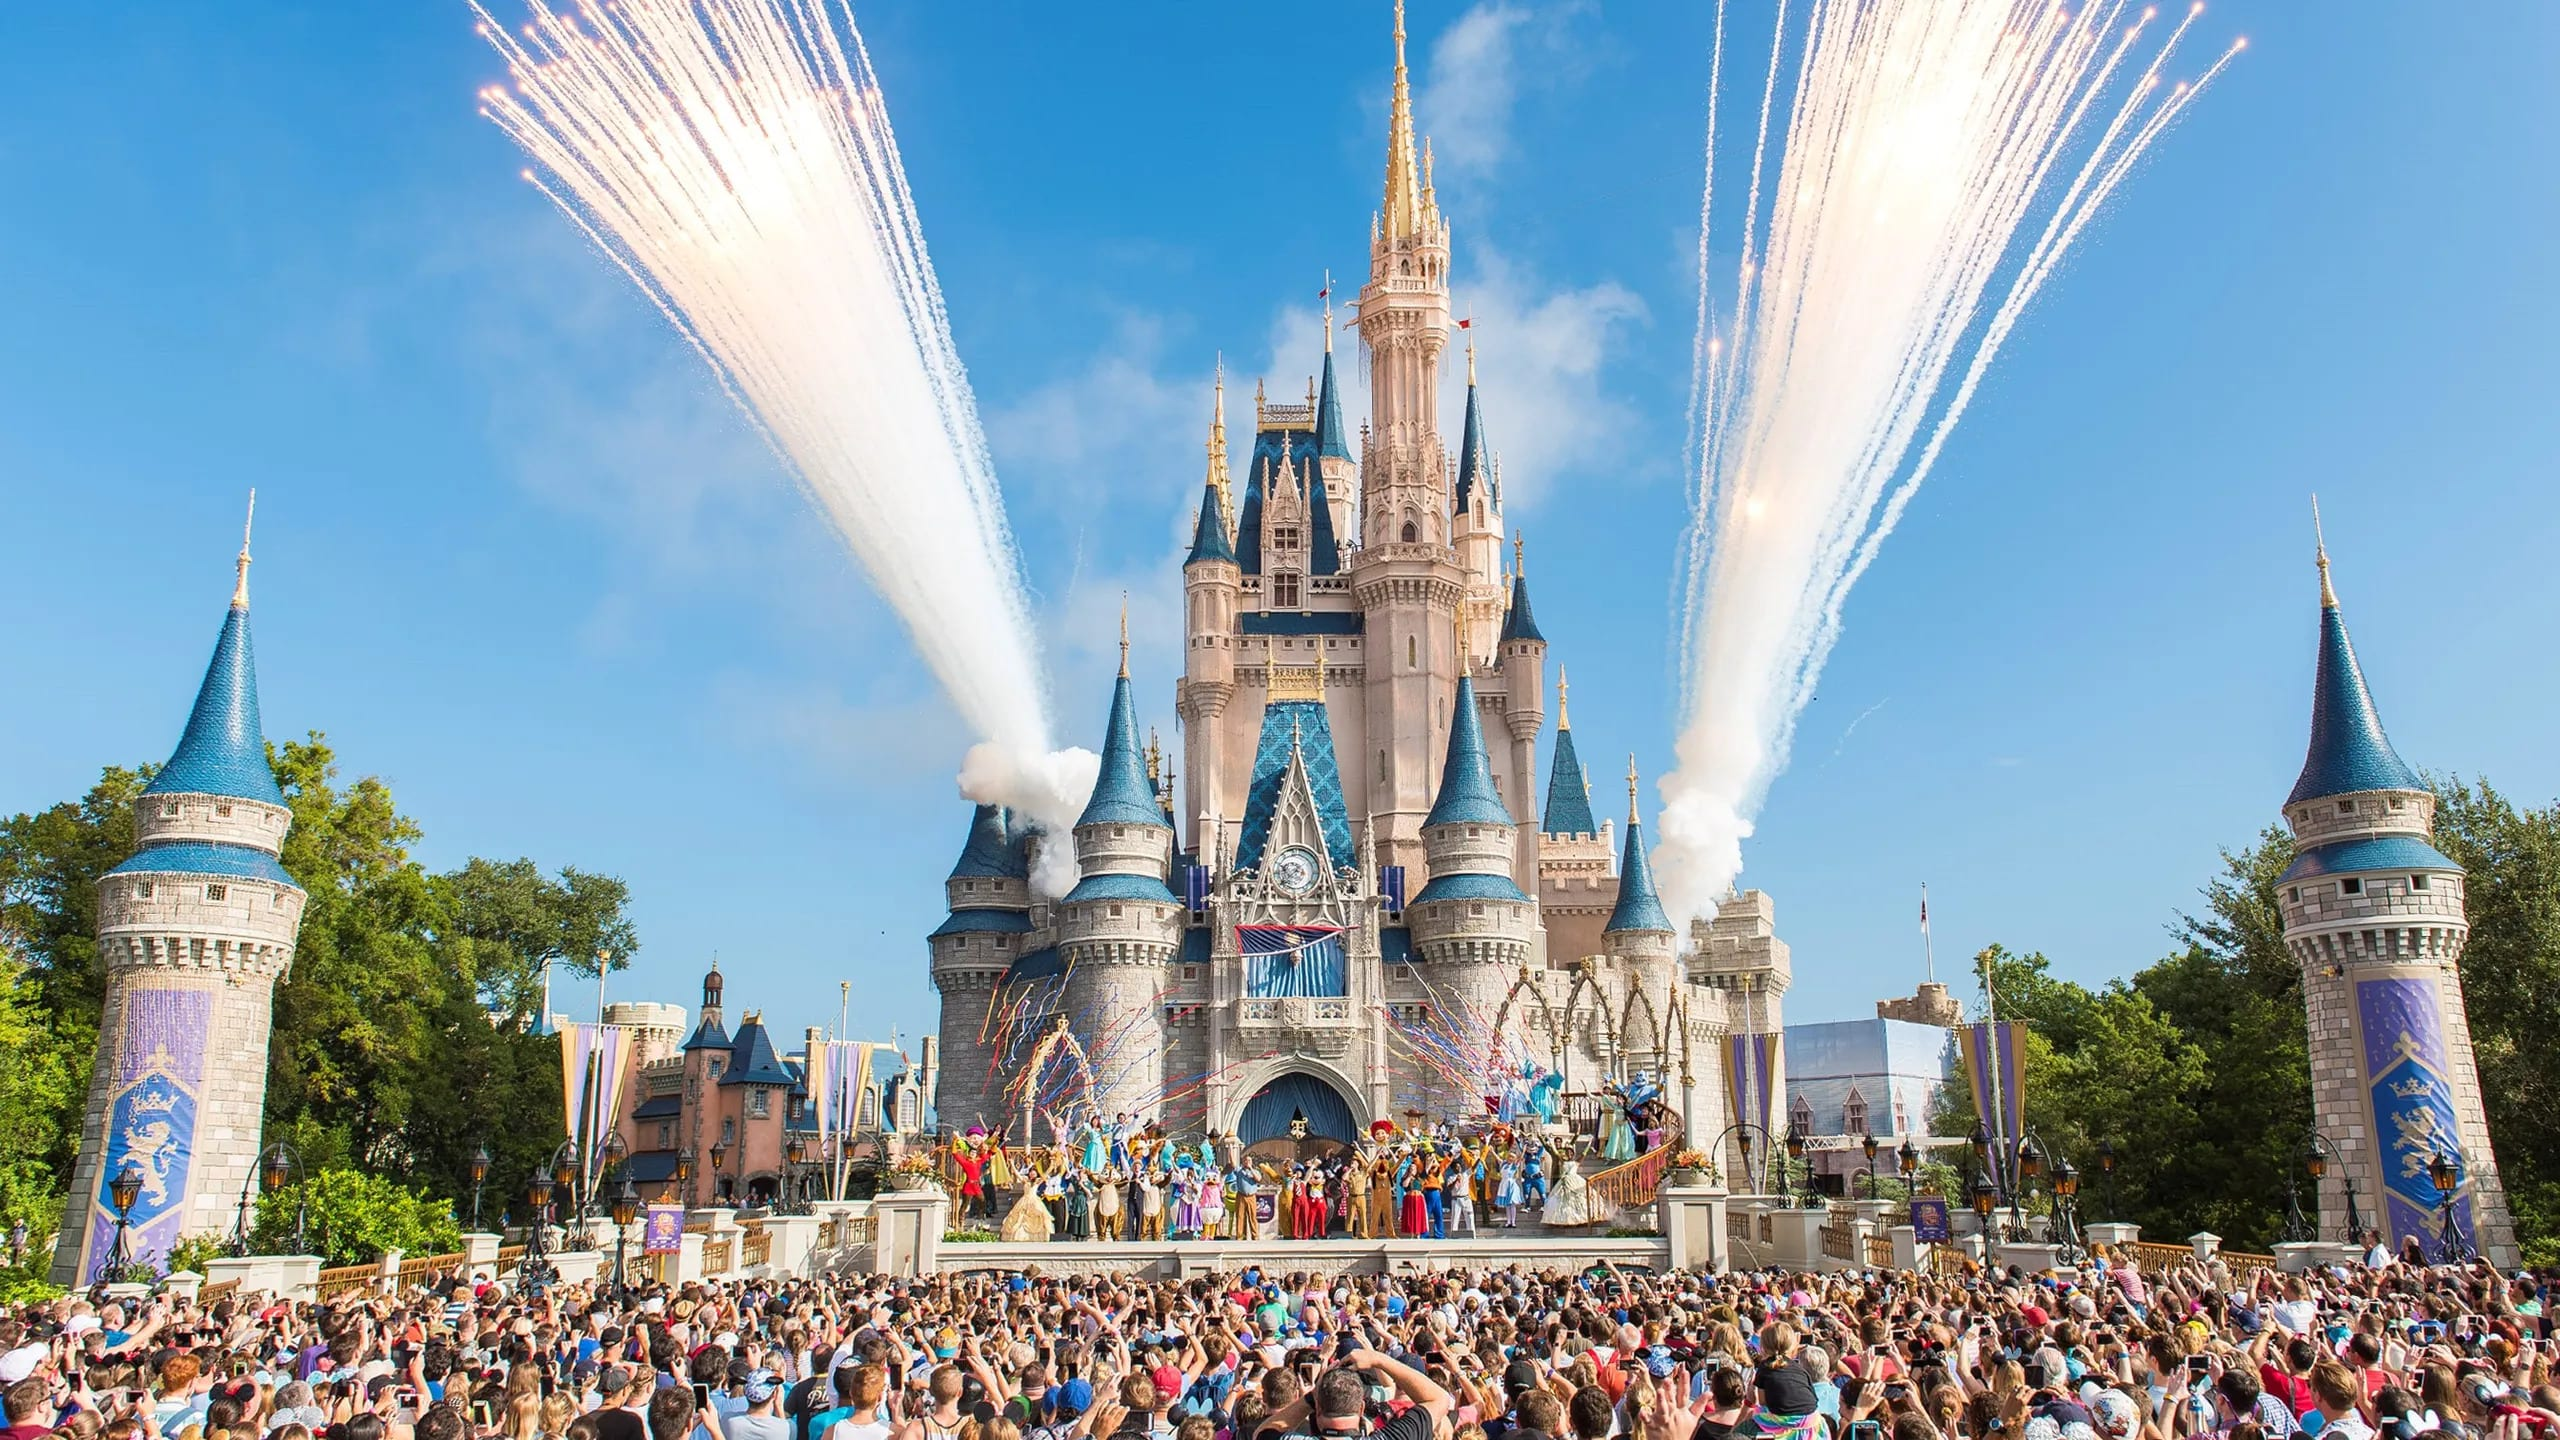 Theme Park Mask Policies: What You Need to Know